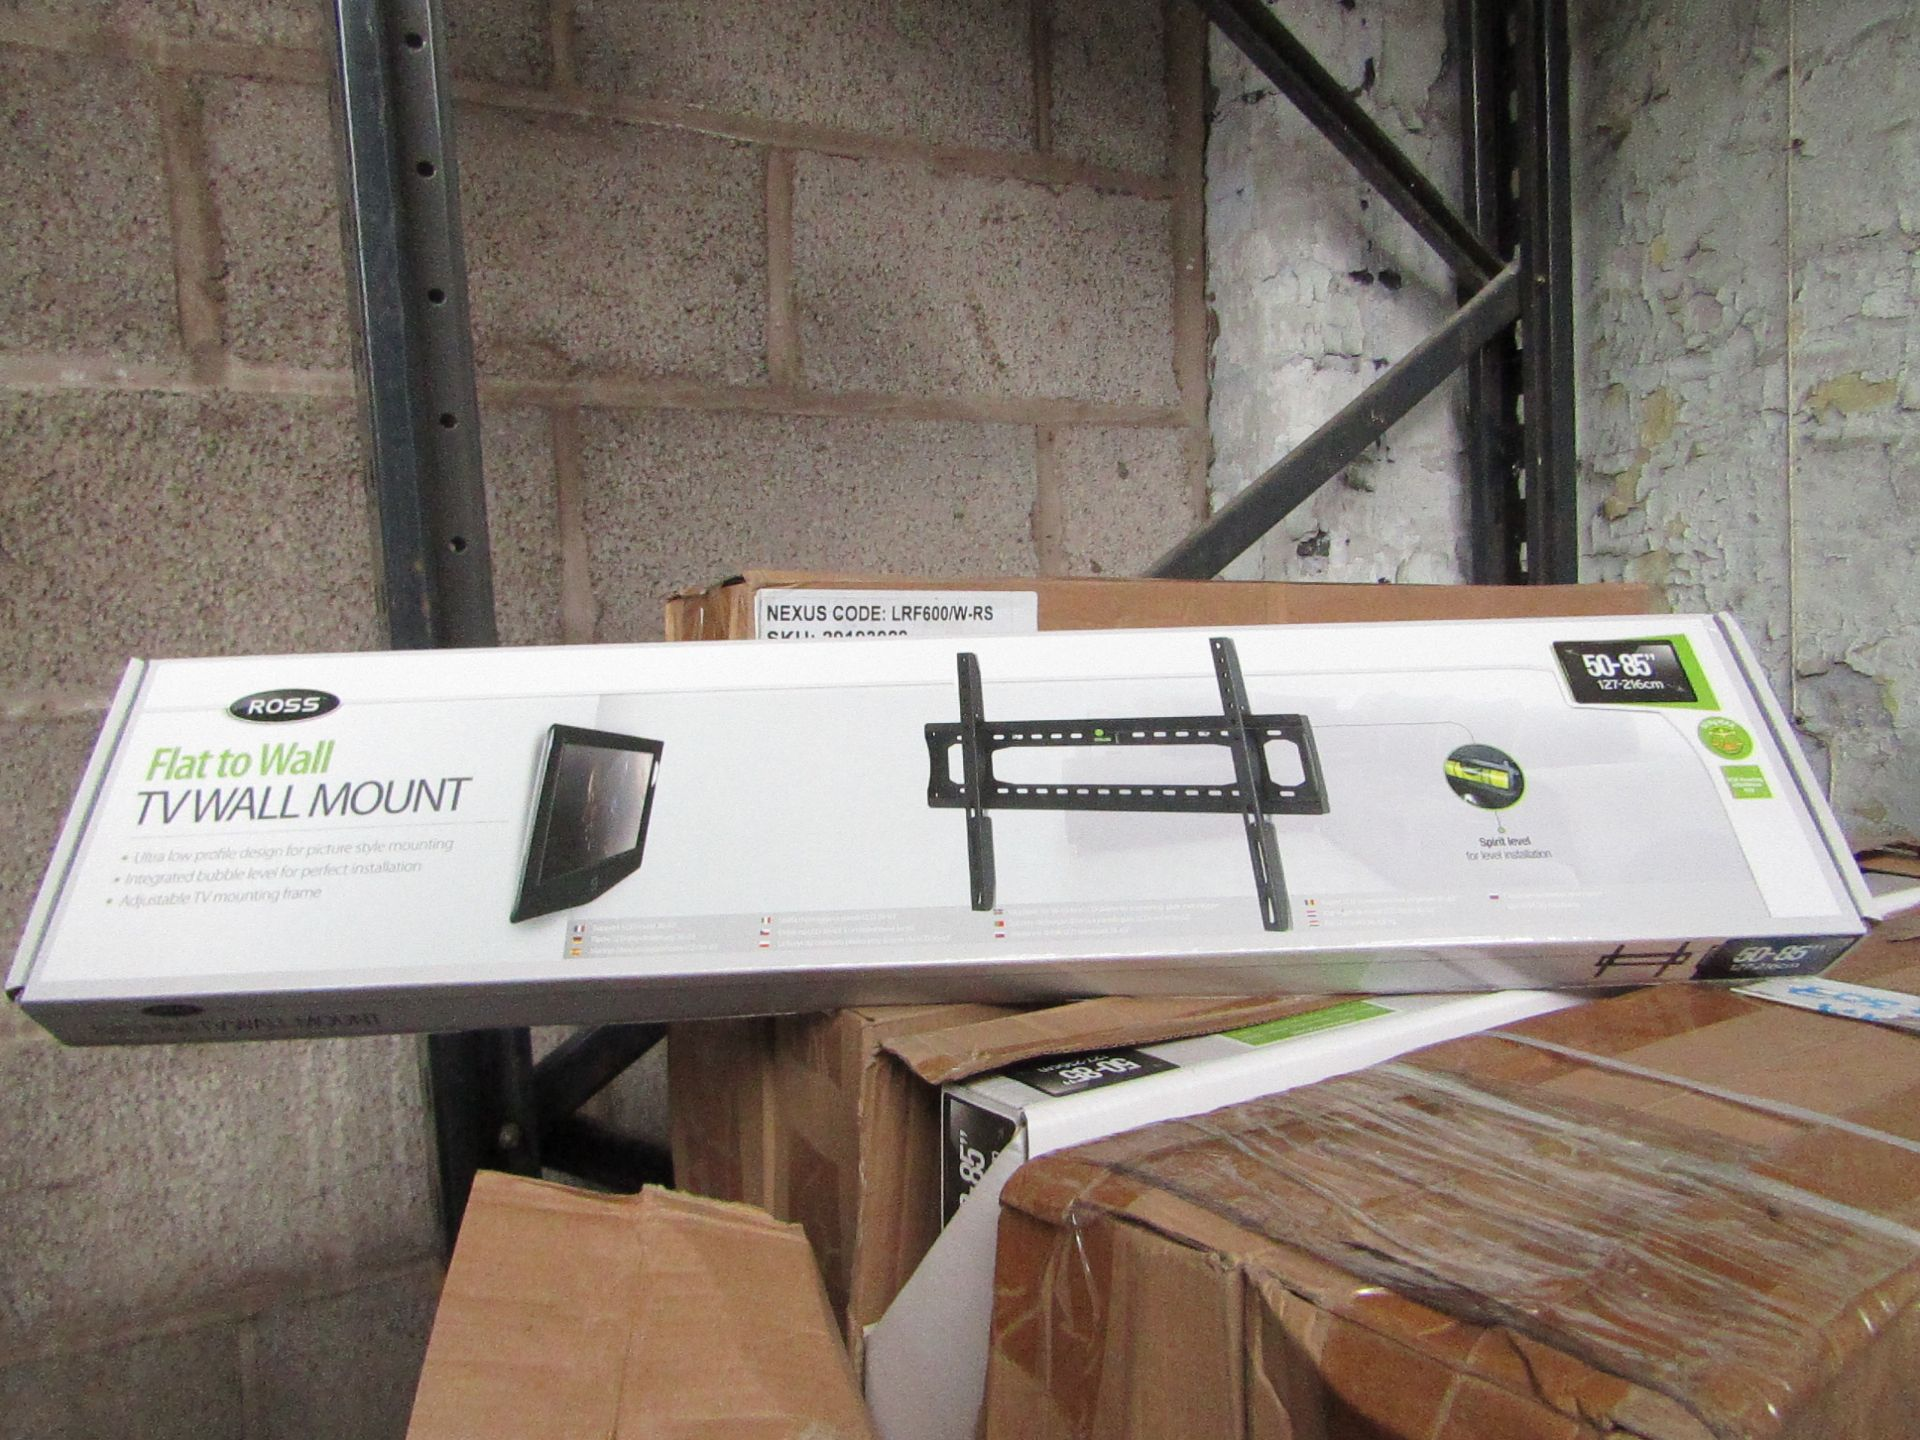 "Lot 181 - 2x Ross - Flat to Wall TV Mount 50 - 85"" - New & Boxed."